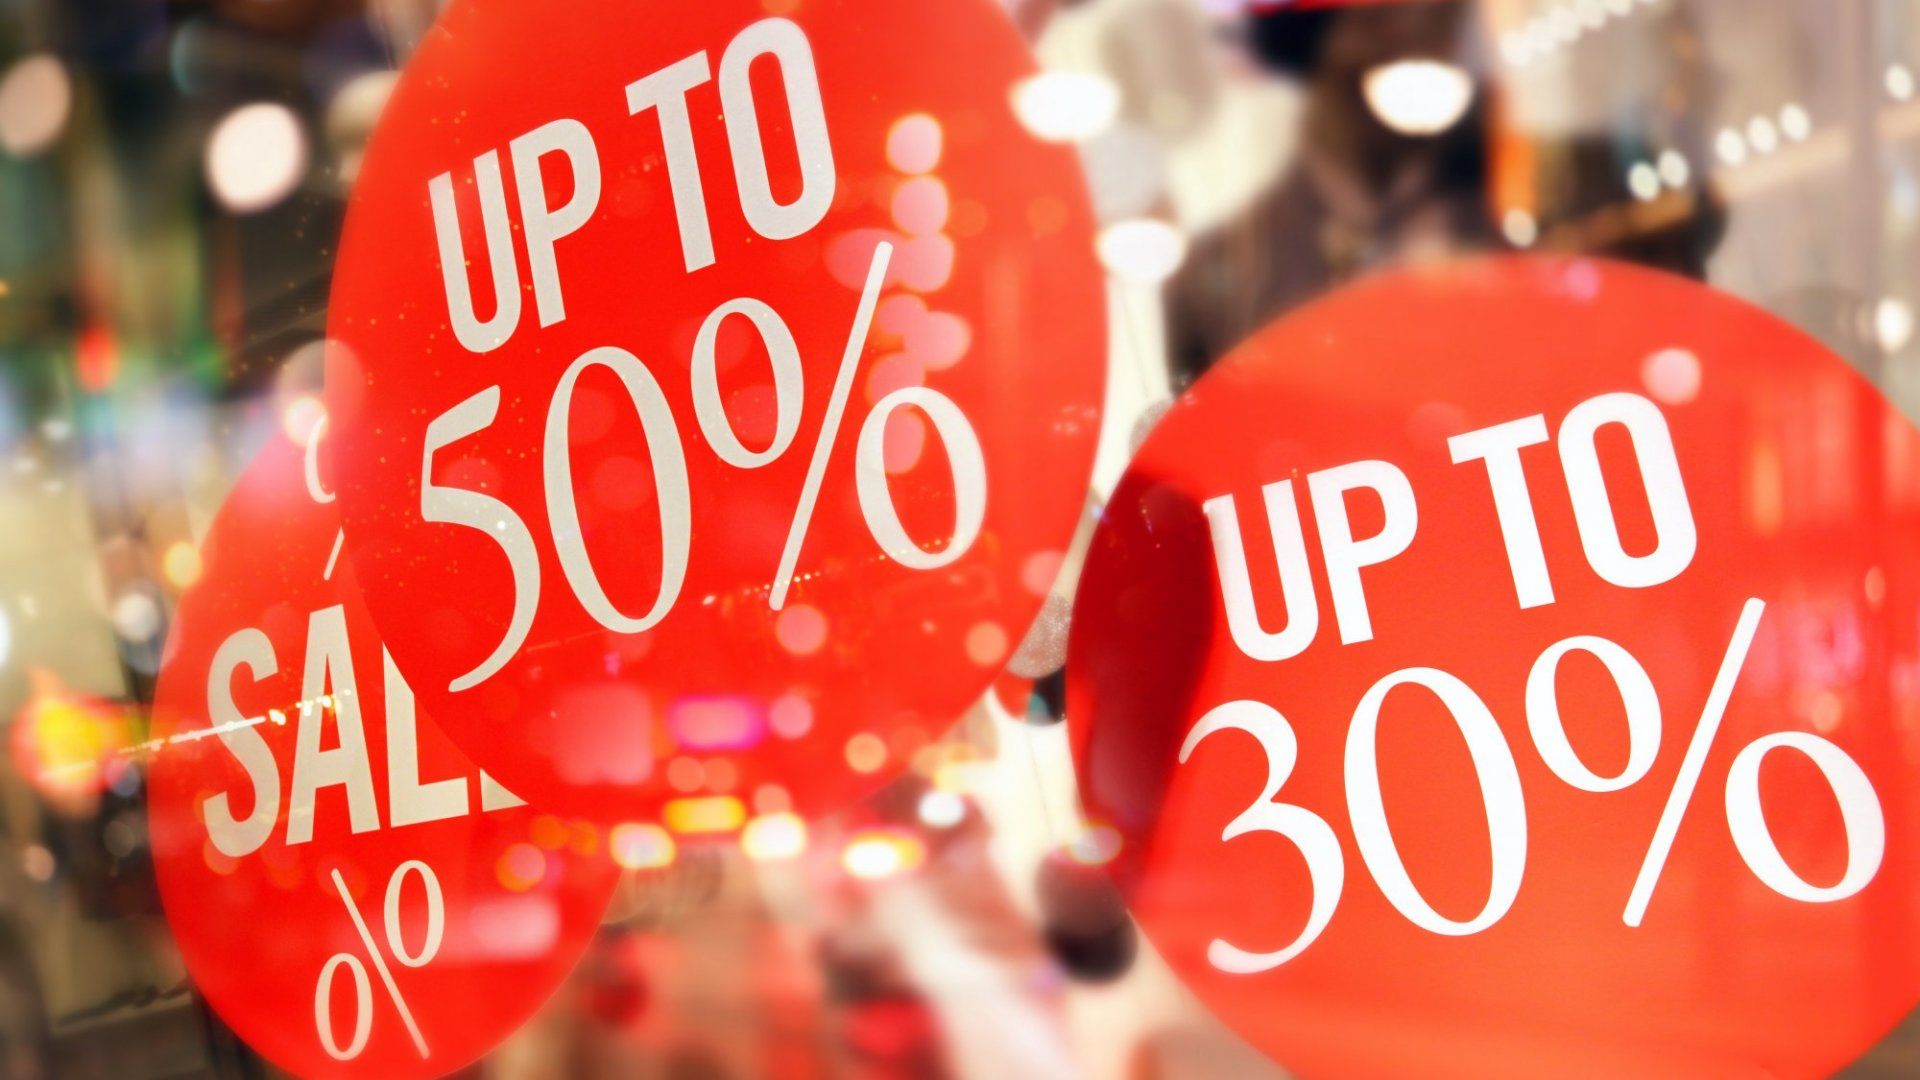 Why the Biggest Discounts Represent the Worst Deals